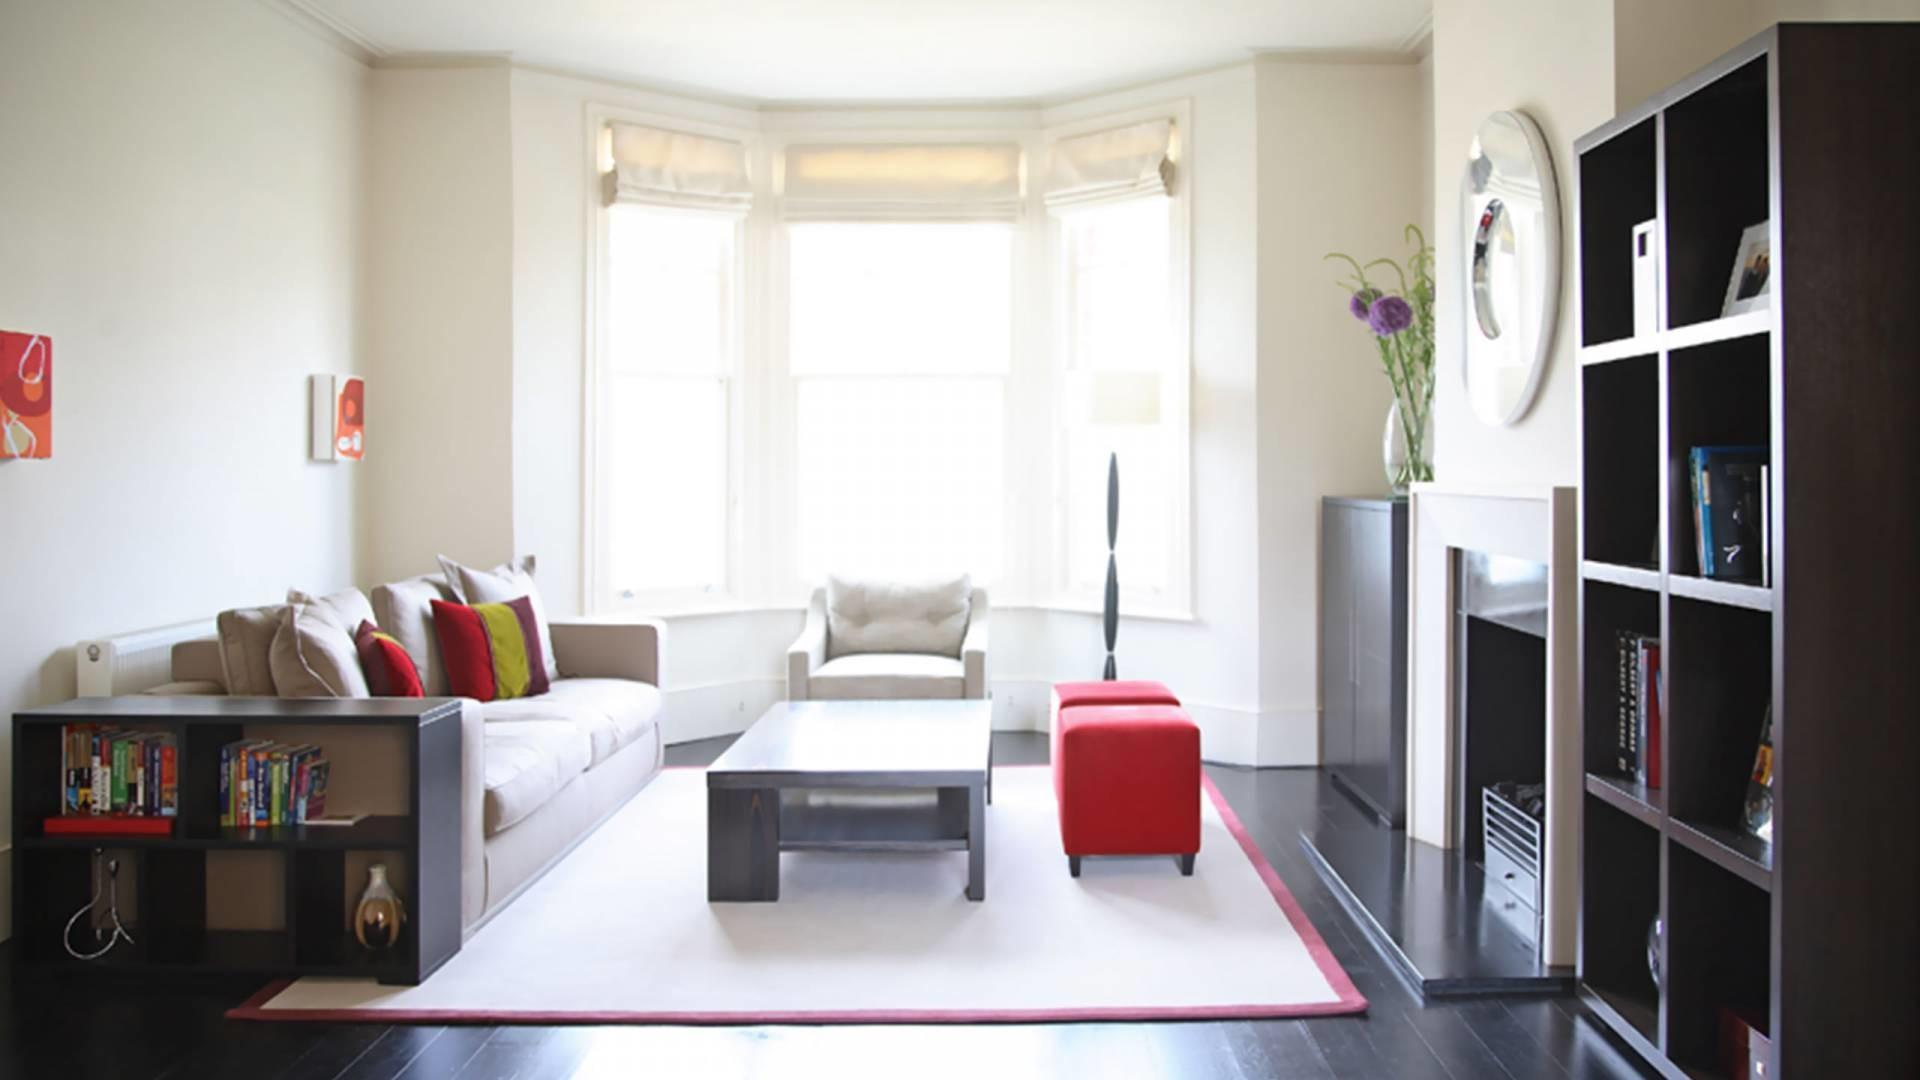 Residential House North London British Contemporary